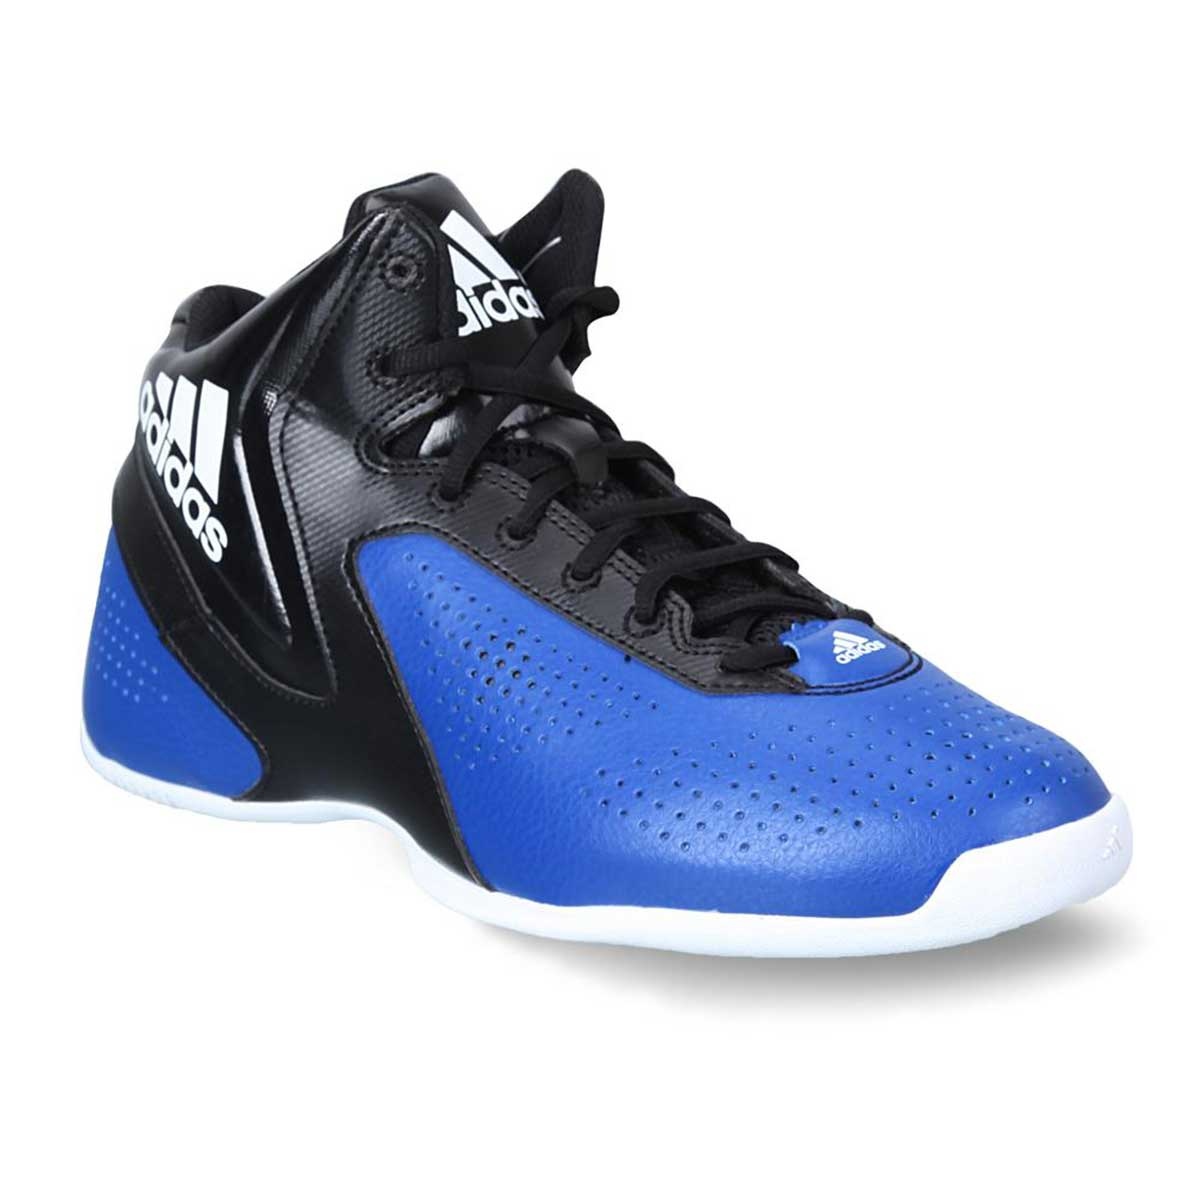 Adidas Wings Shoes India